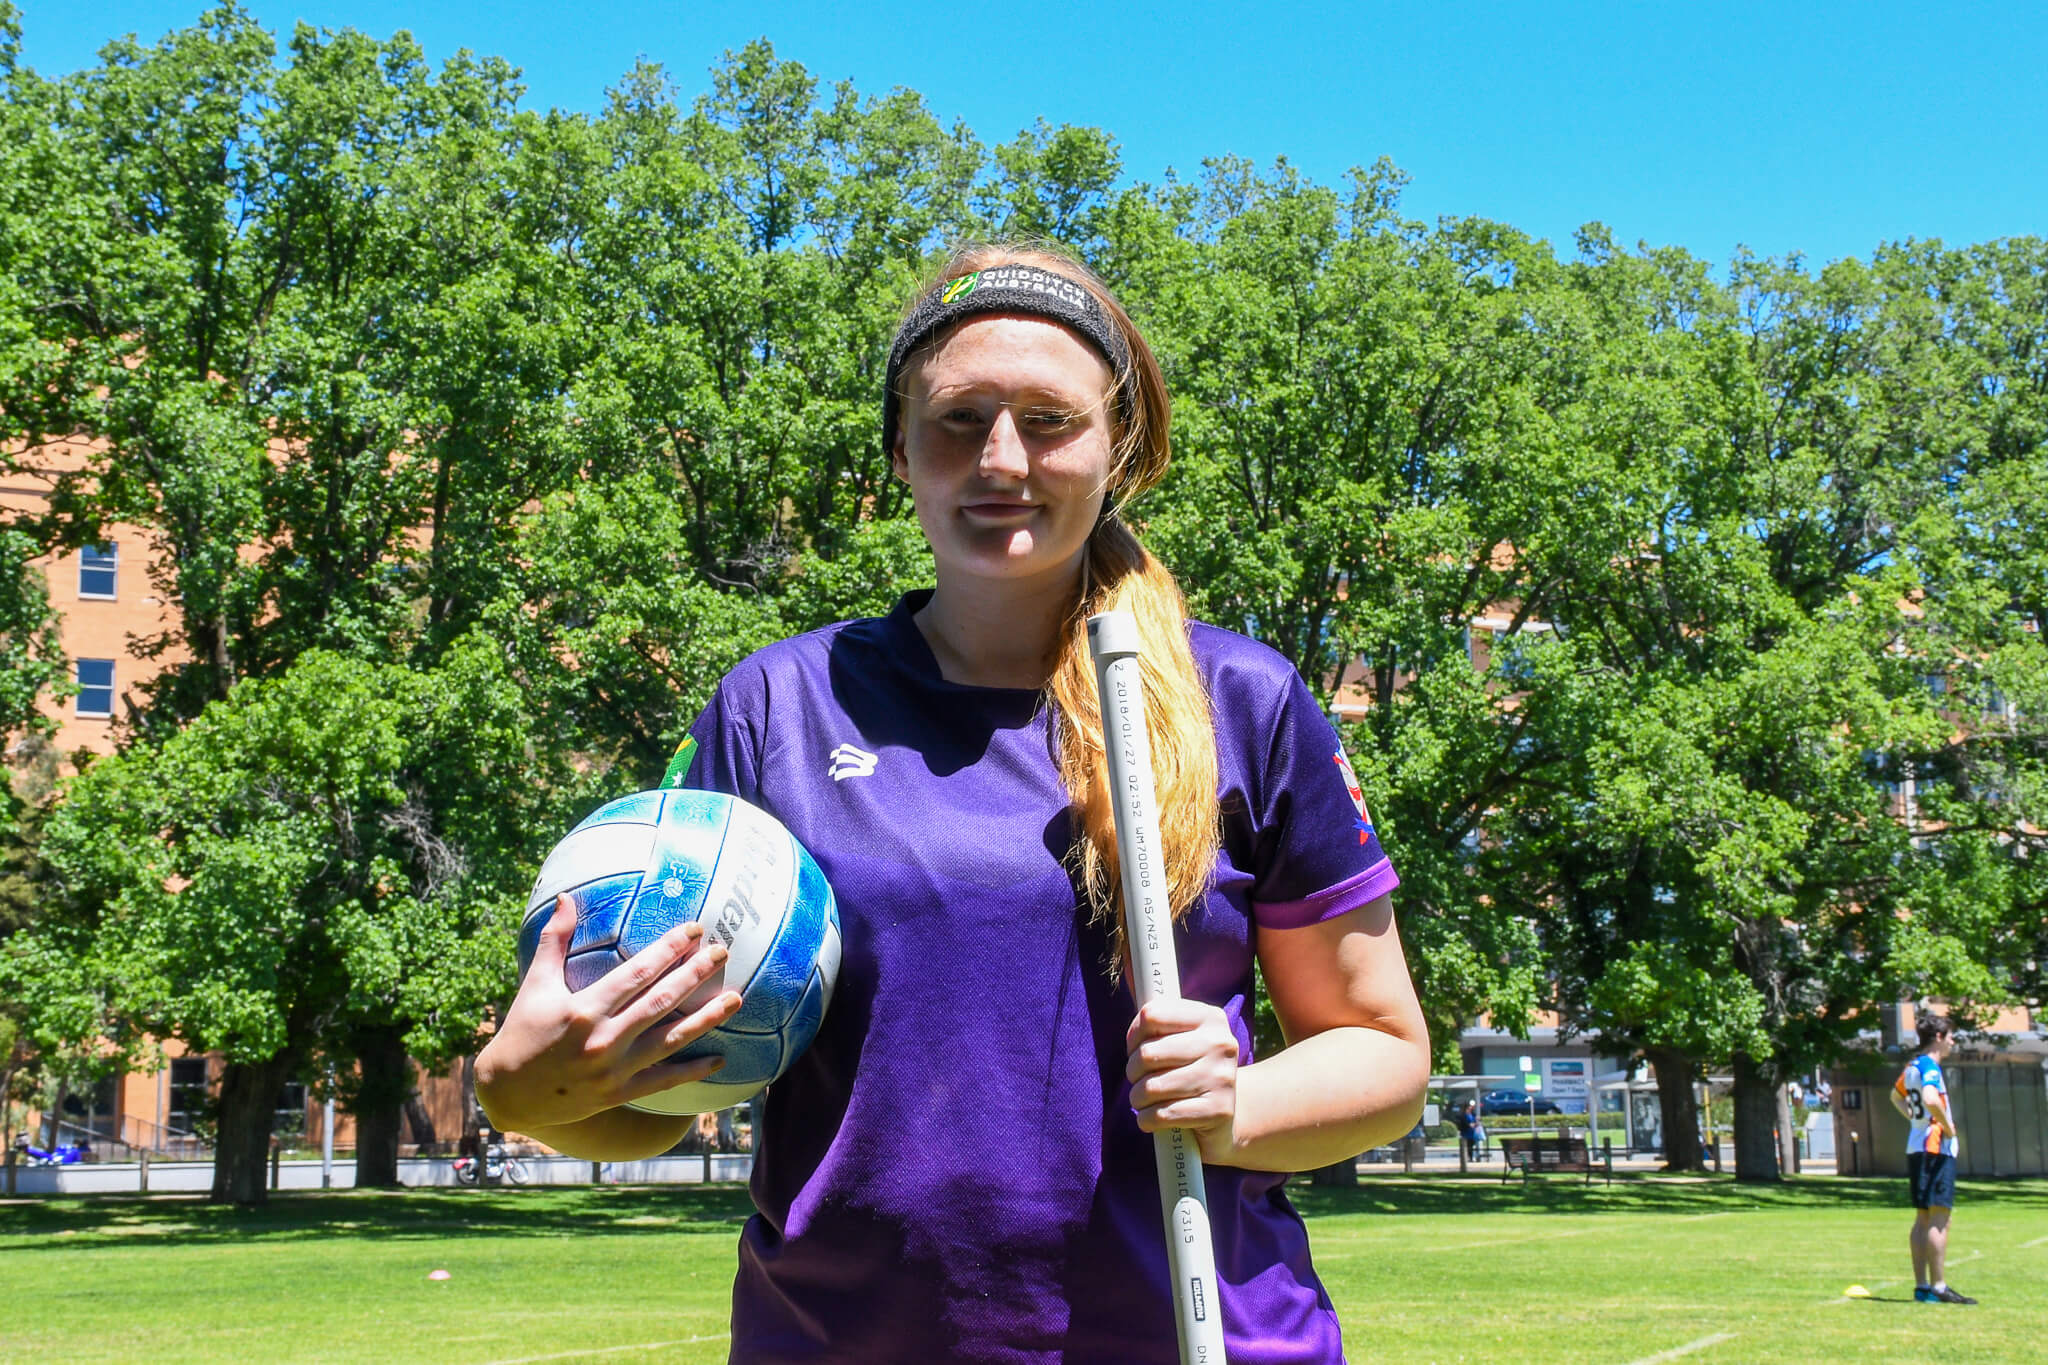 It's quidditch finals season, and the big men – and women – fly